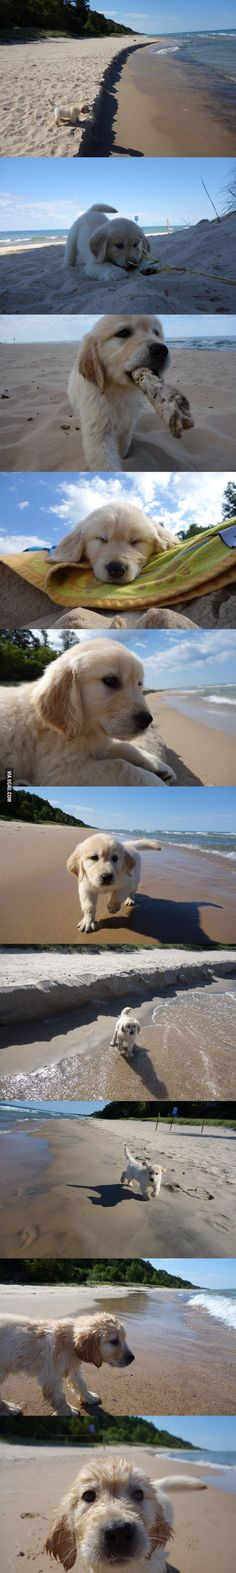 cutest beach pictures ever!!